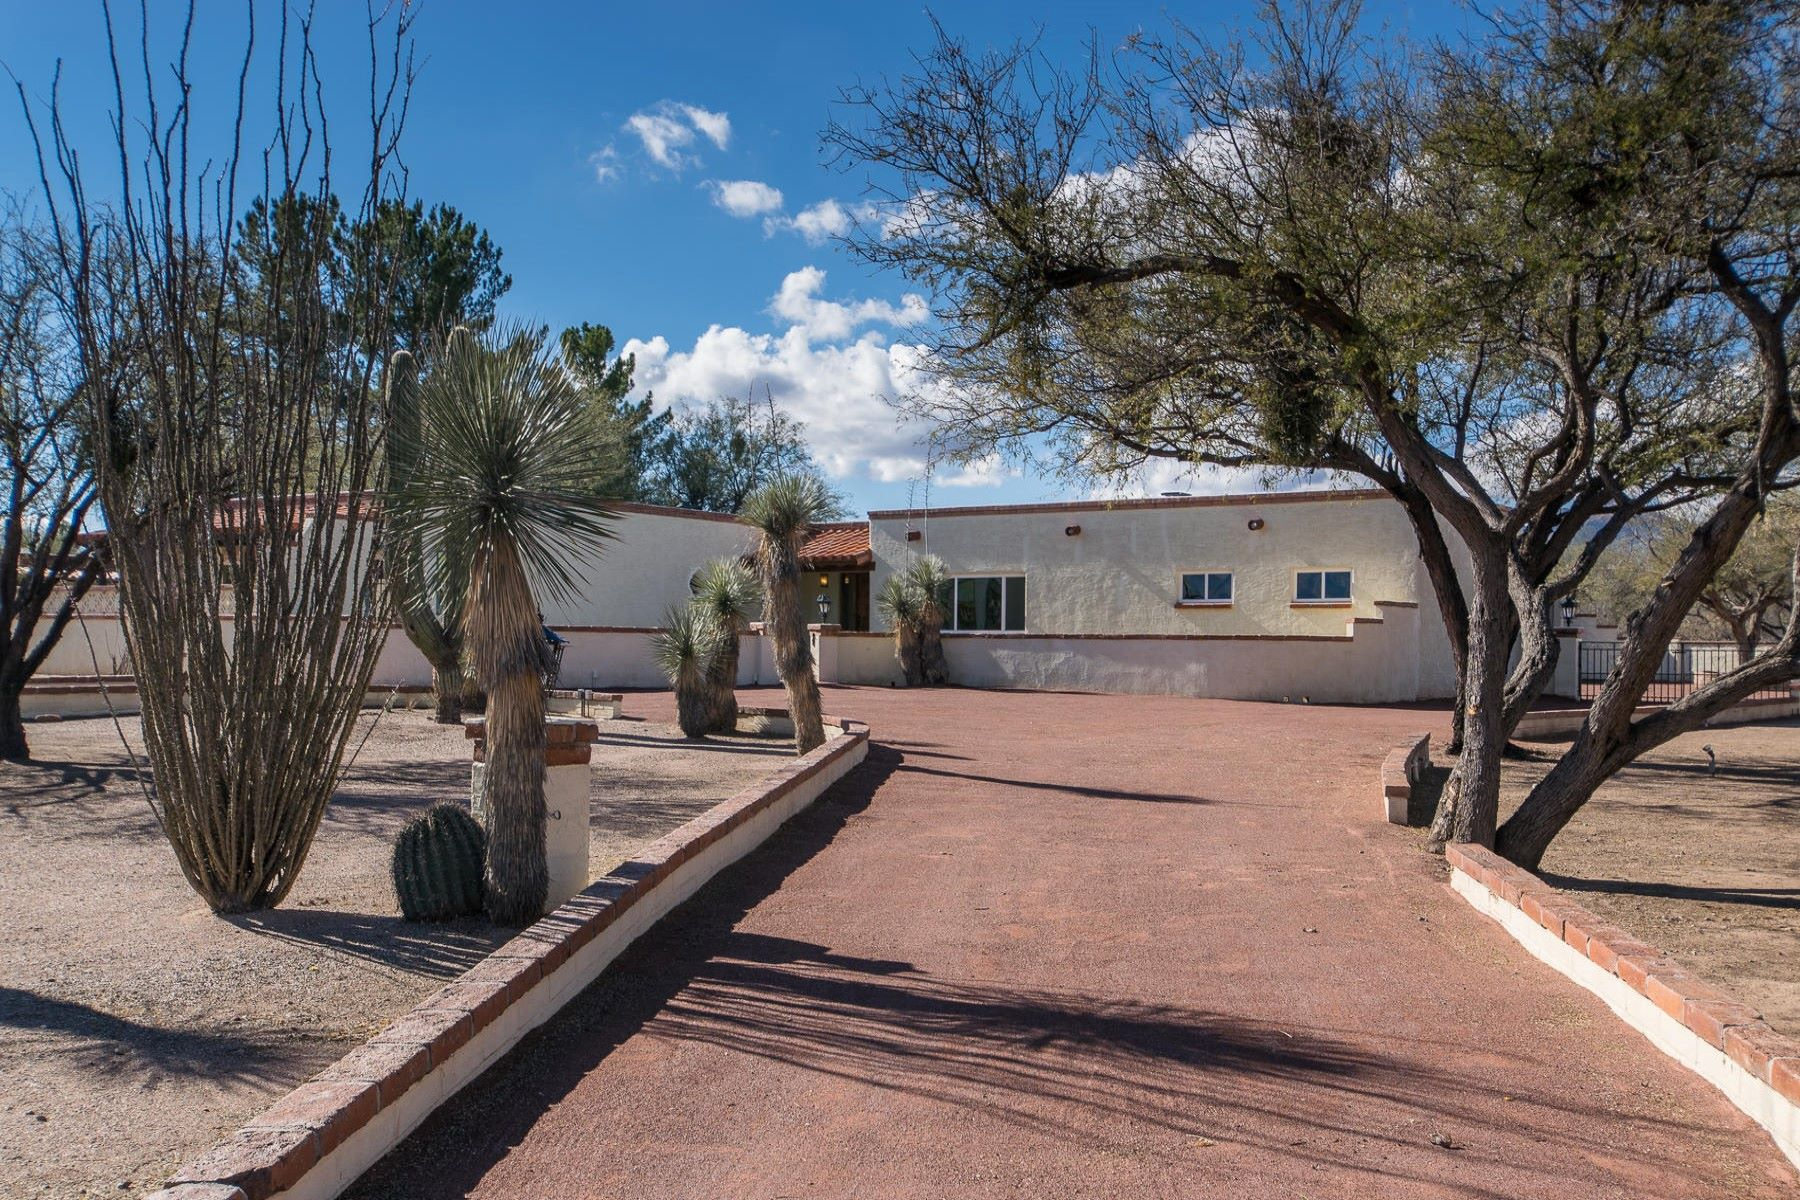 Single Family Homes for Sale at Charming Three Bedroom Home with Views 2364 Camino Esplendido Tubac, Arizona 85646 United States